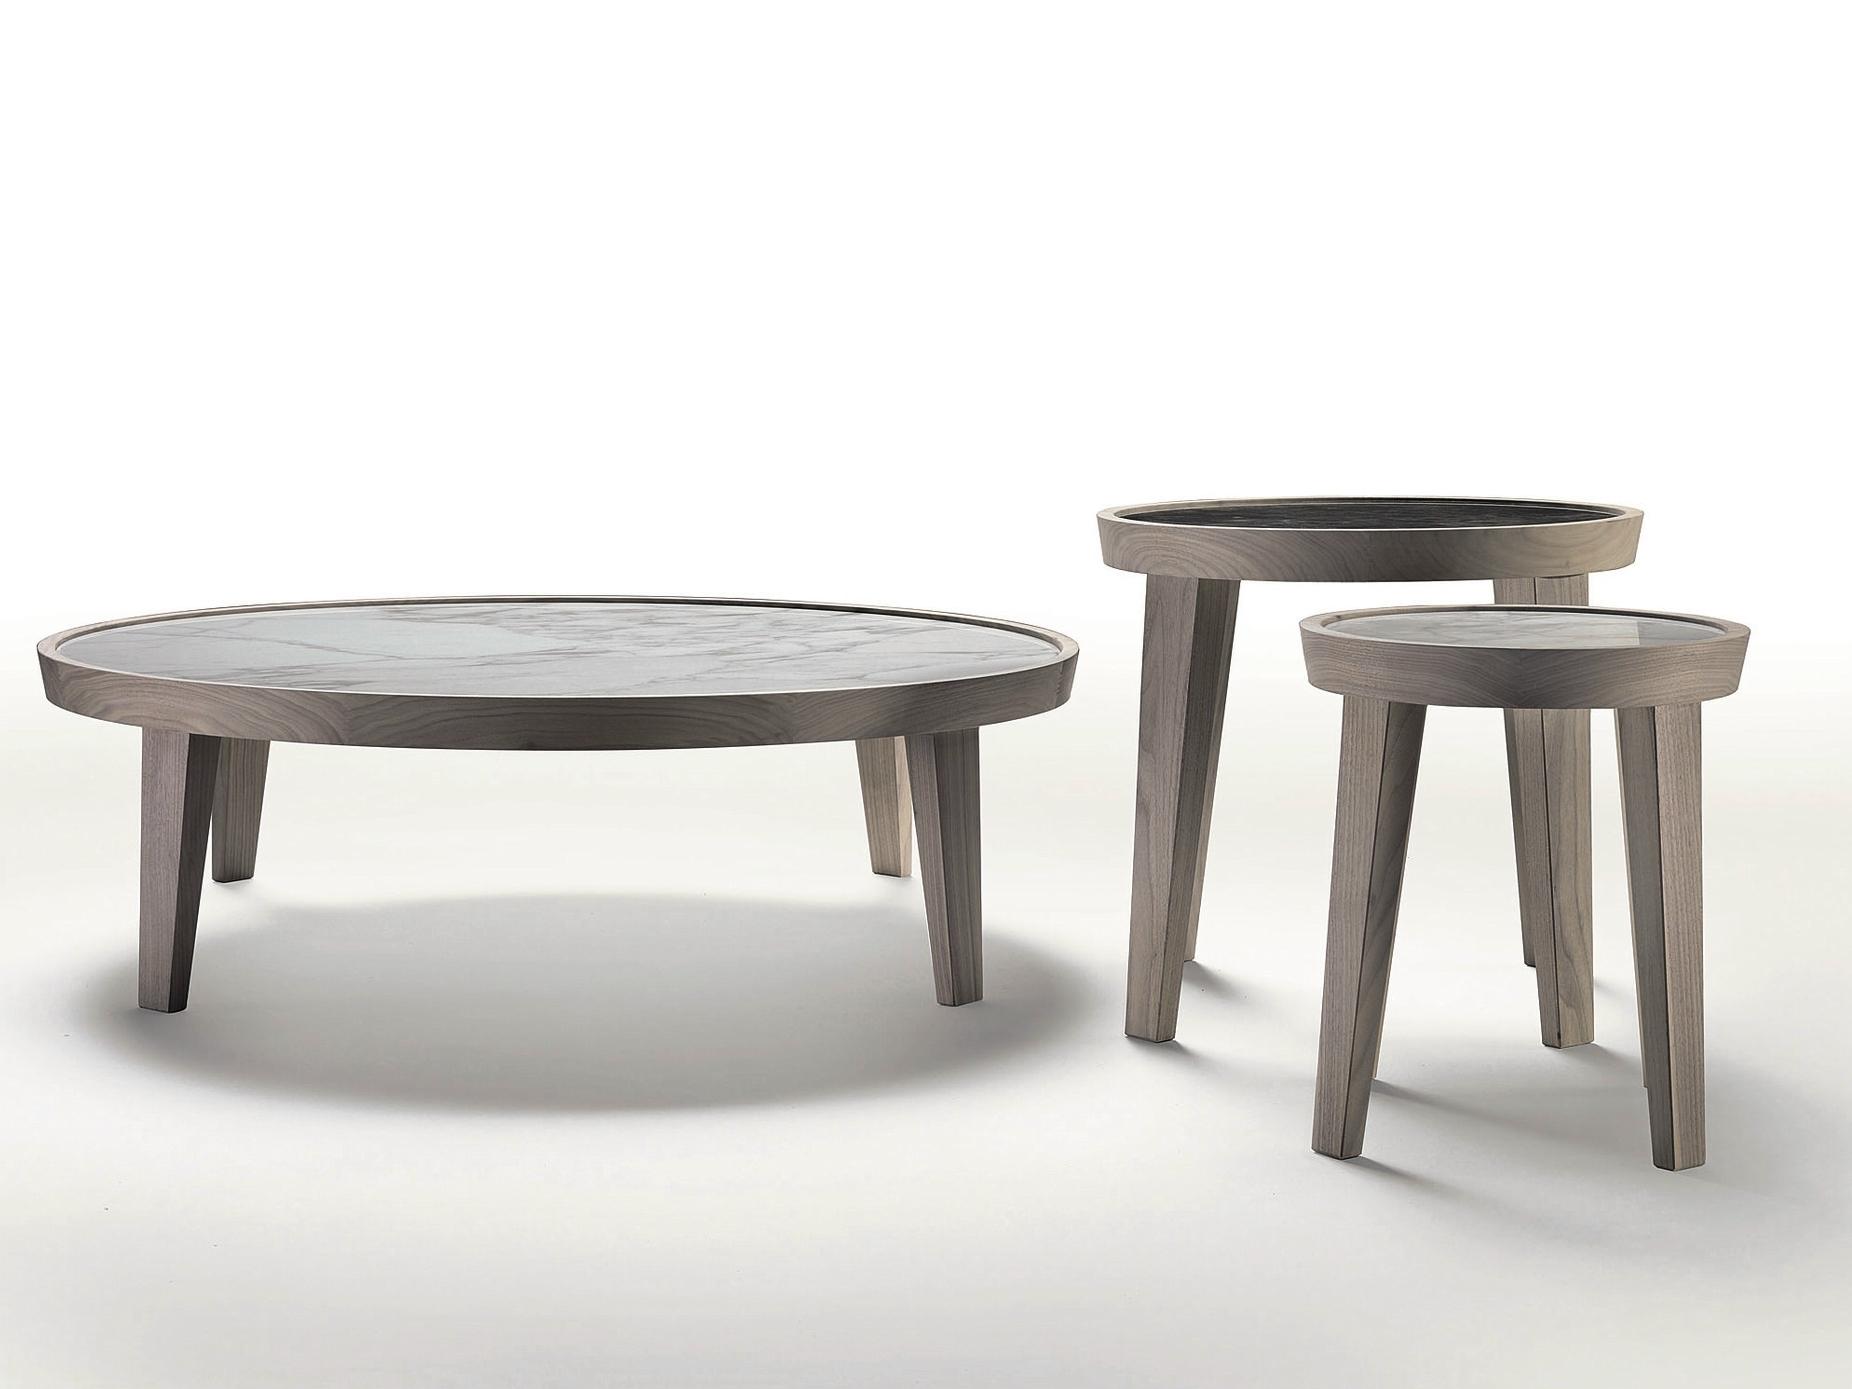 Stylish Marble Round Coffee Table With Coffee Table Smart Round intended for Smart Round Marble Top Coffee Tables (Image 30 of 30)